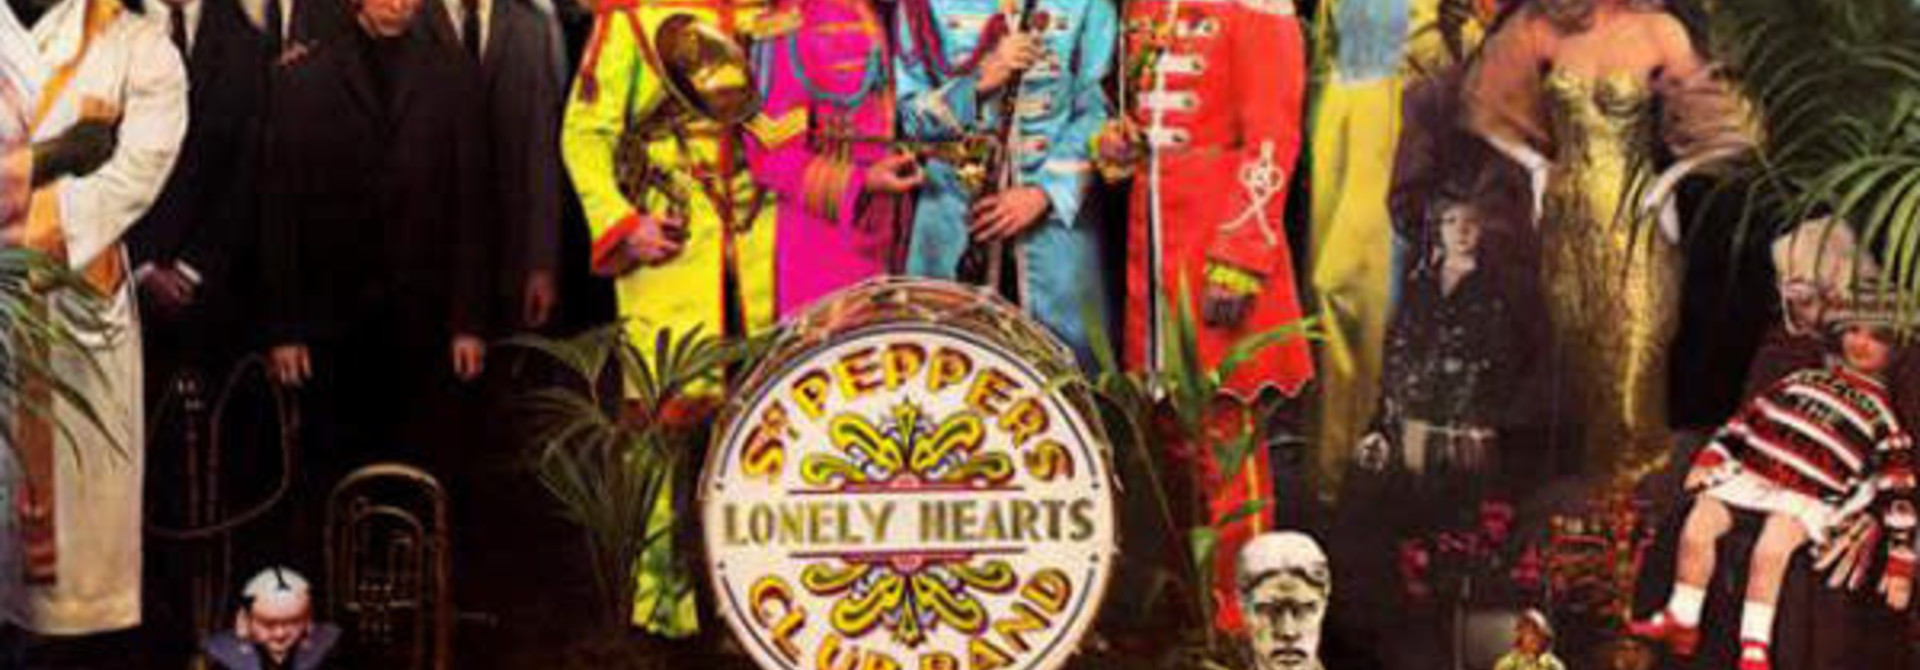 Beatles • Sgt Pepper's Lonely Hearts Club Band